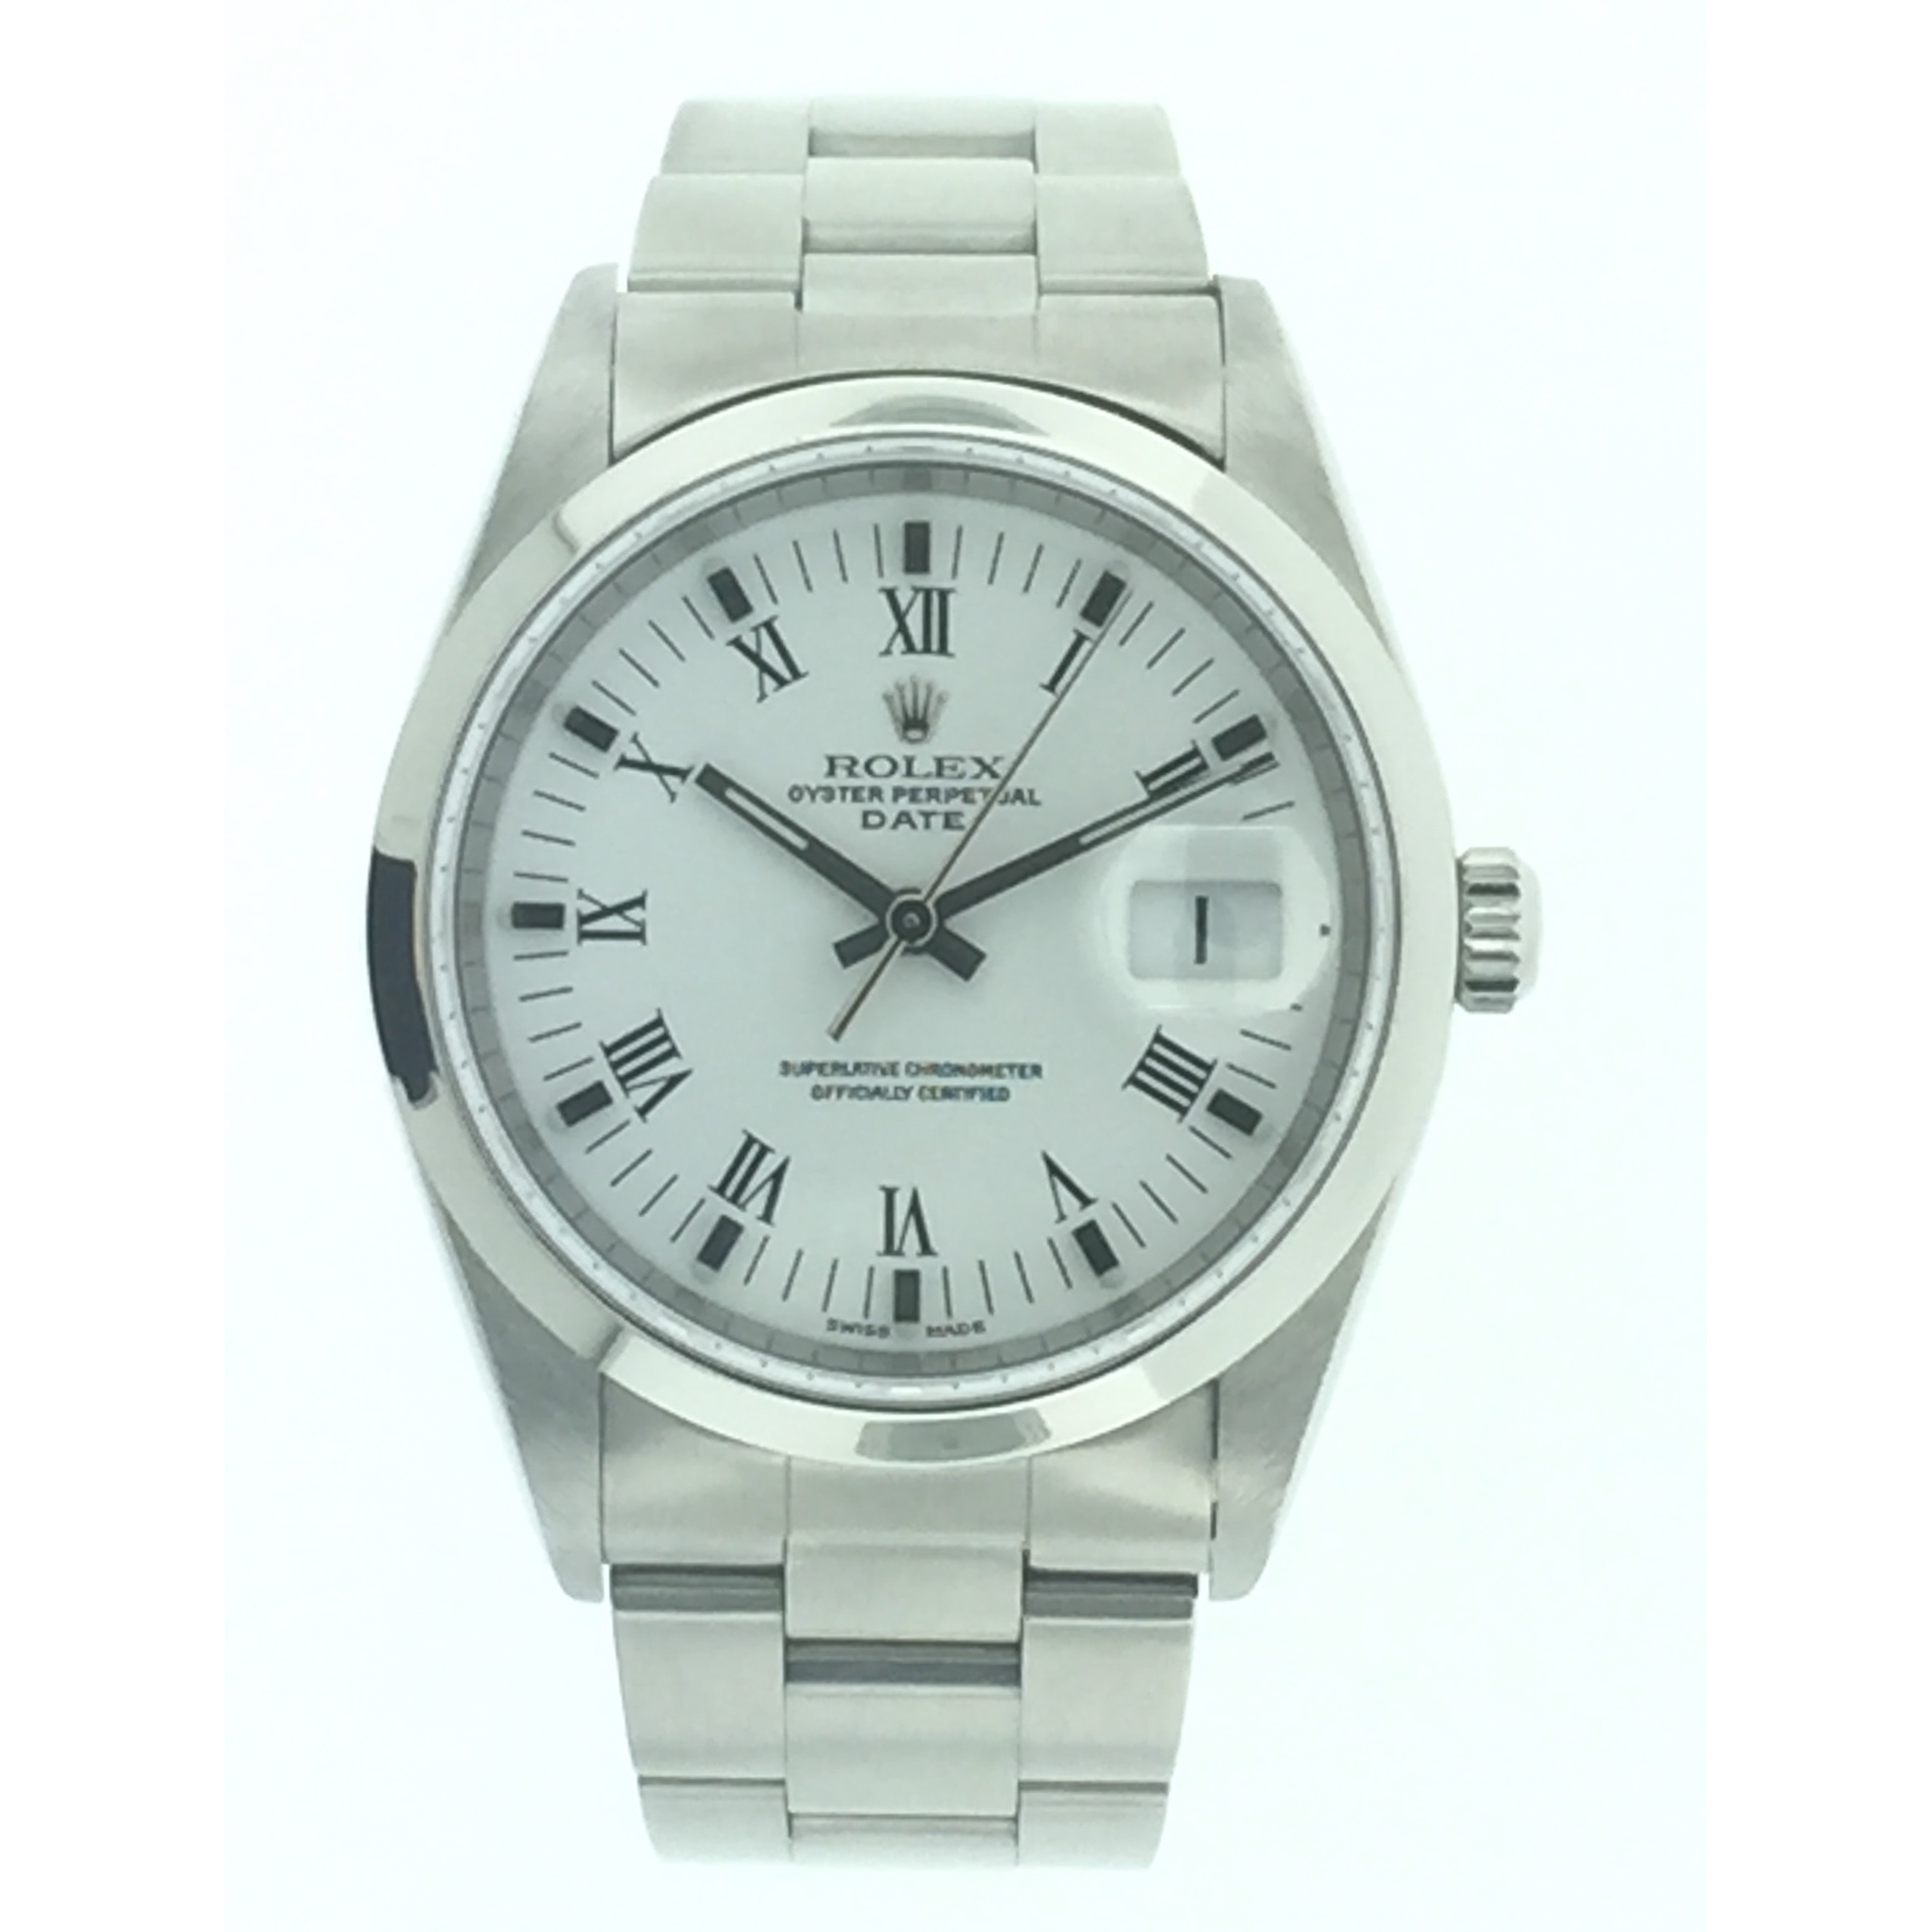 Rolex Mens Stainless Steel Date Watch w/Blue Stick Dial 1...